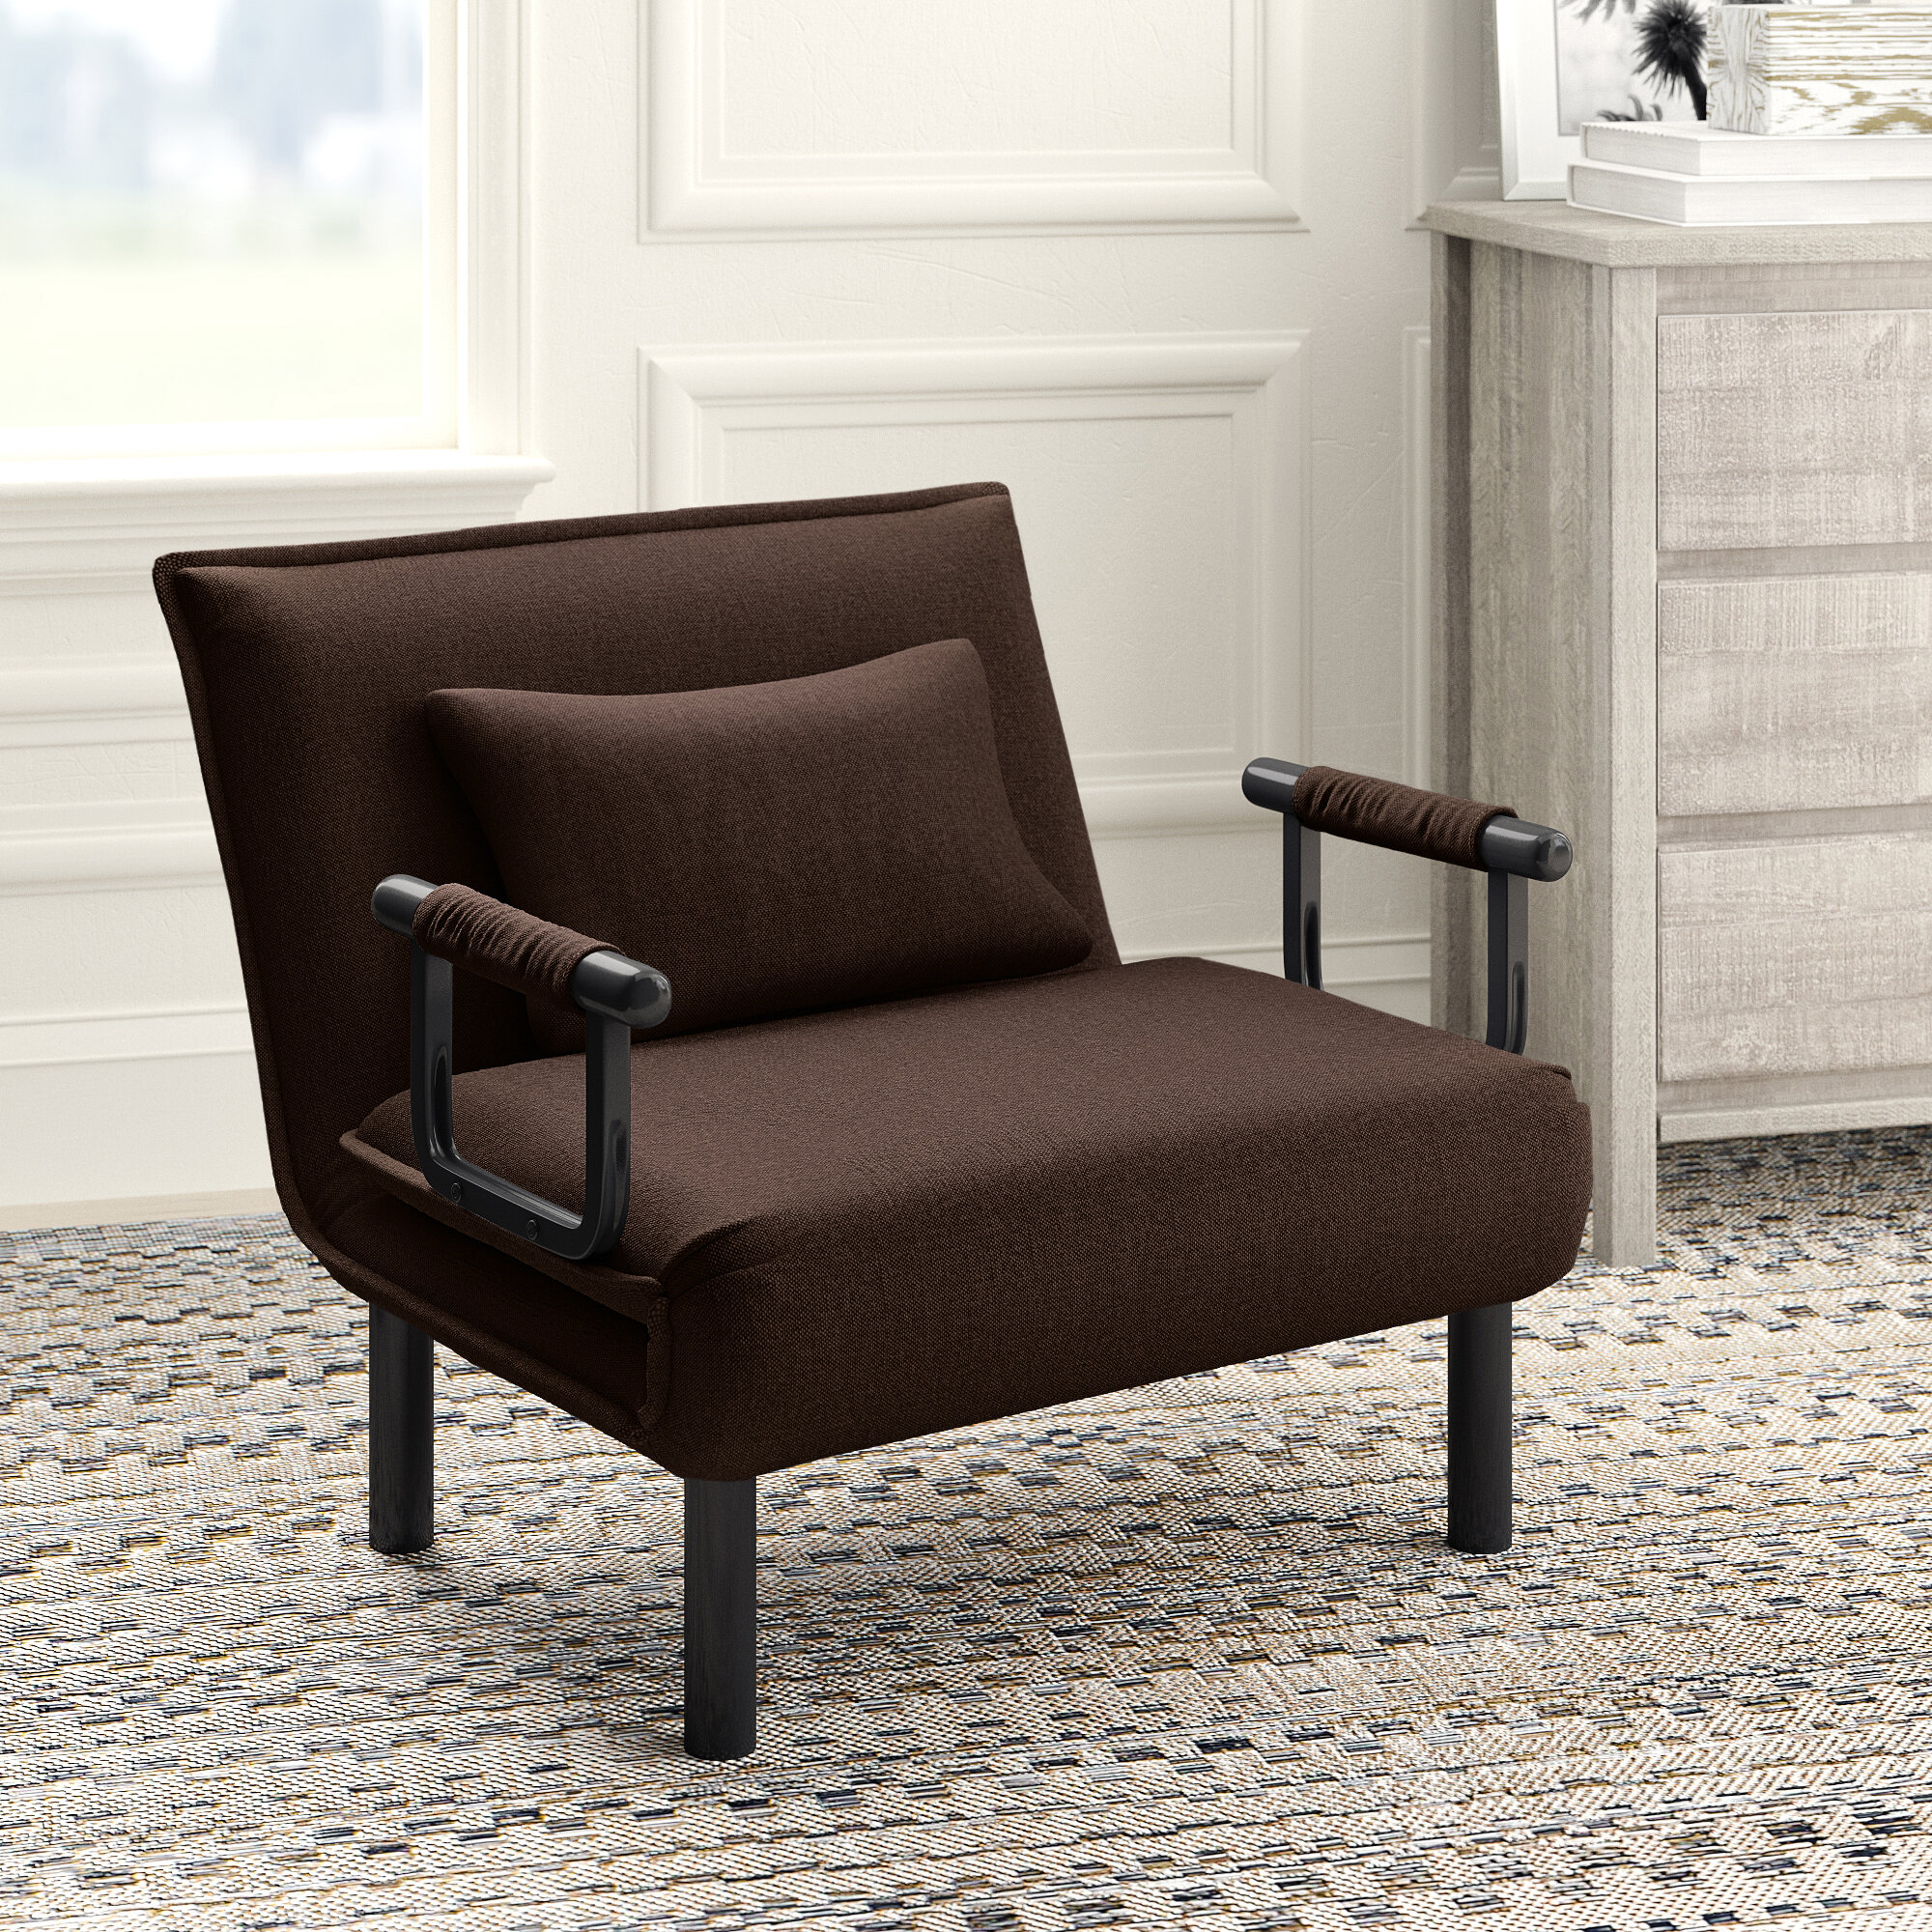 Springdale Convertible Chair Pertaining To Onderdonk Faux Leather Convertible Chairs (View 8 of 15)